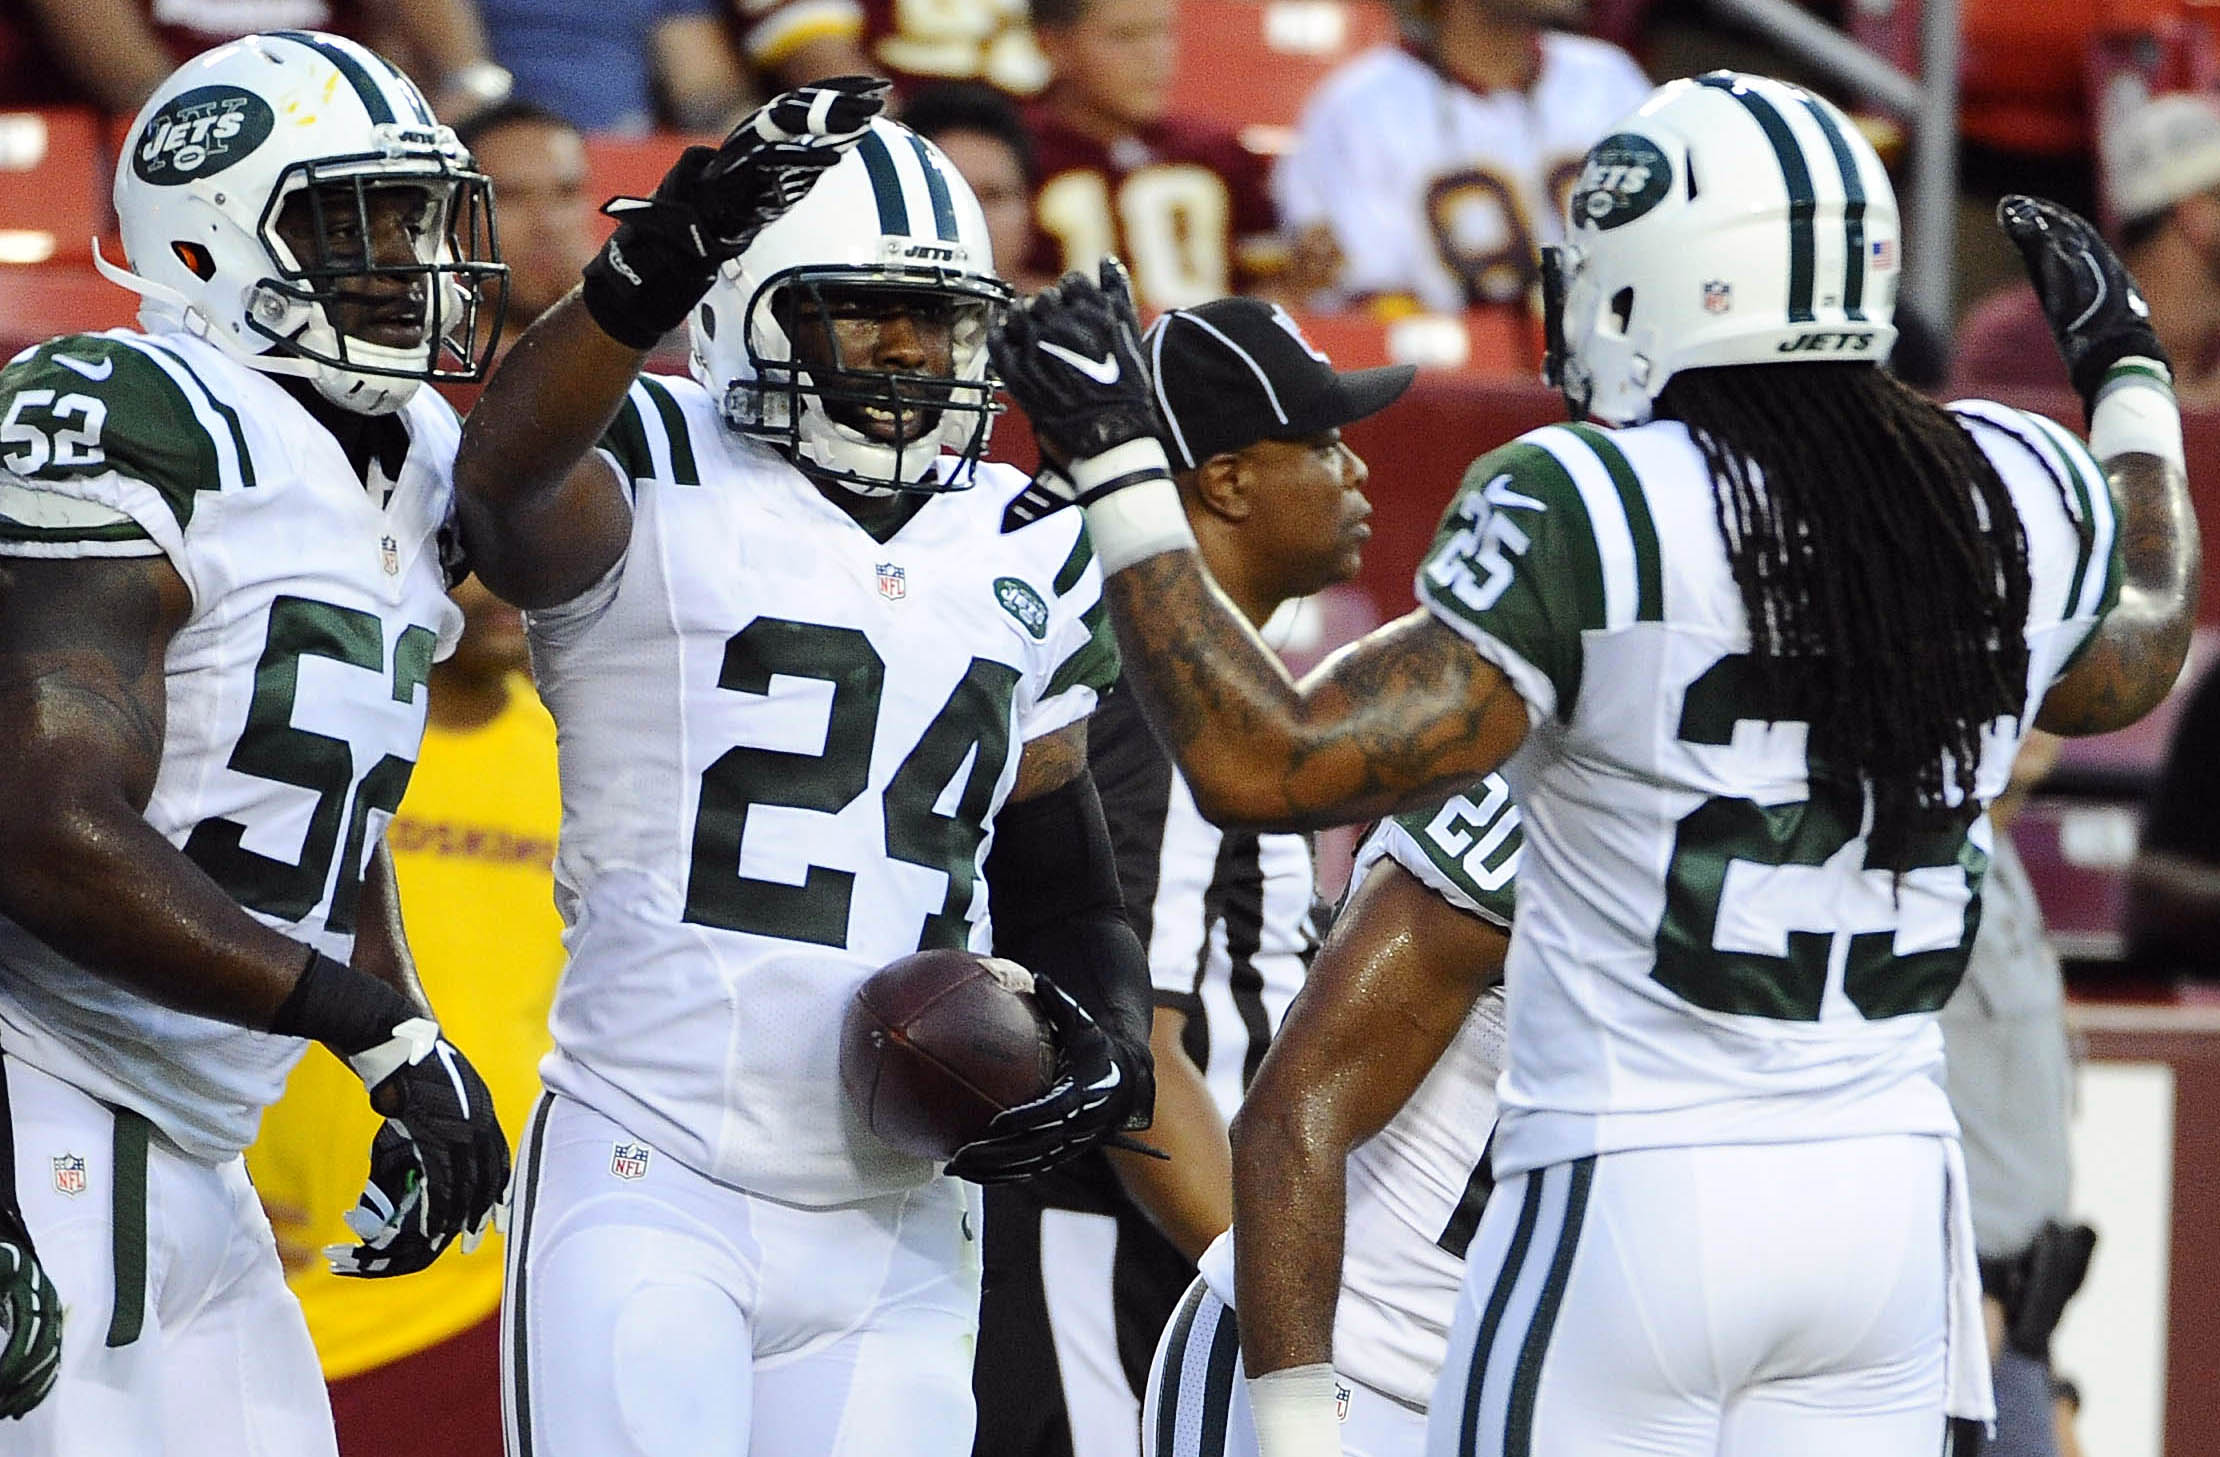 9488281-nfl-preseason-new-york-jets-at-washington-redskins